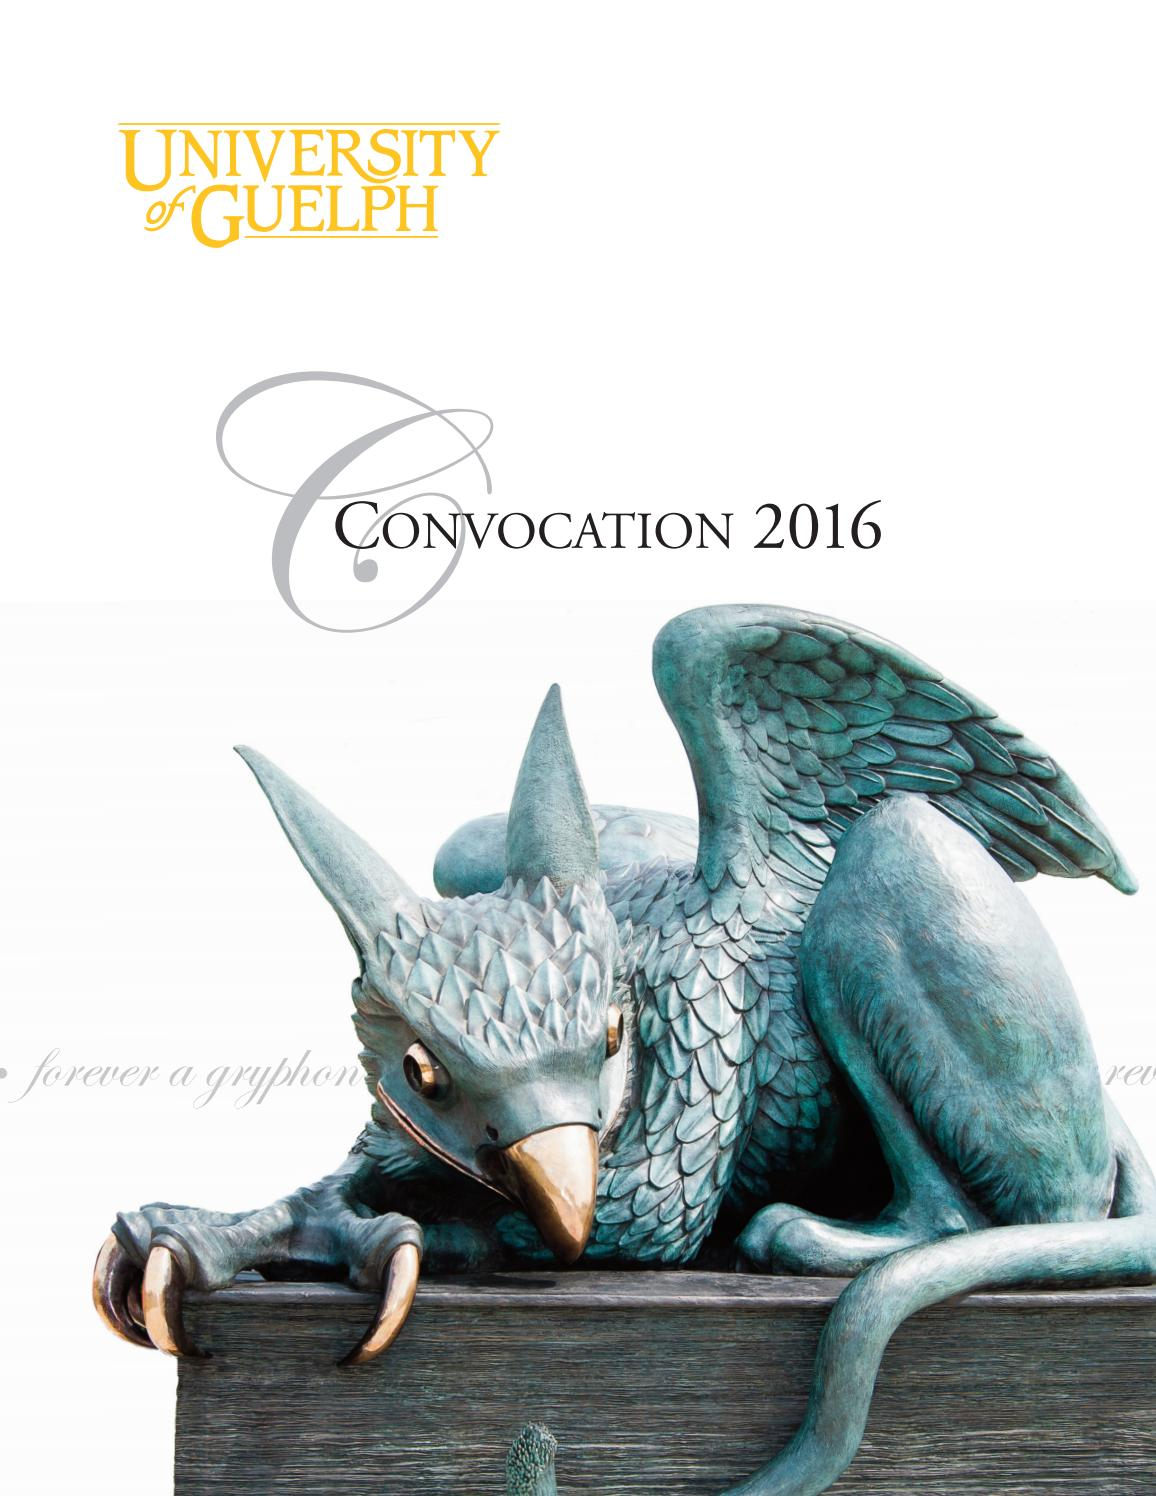 Fall 2016 University of Guelph Convocation Program by University of Guelph  - issuu de2292a9dc